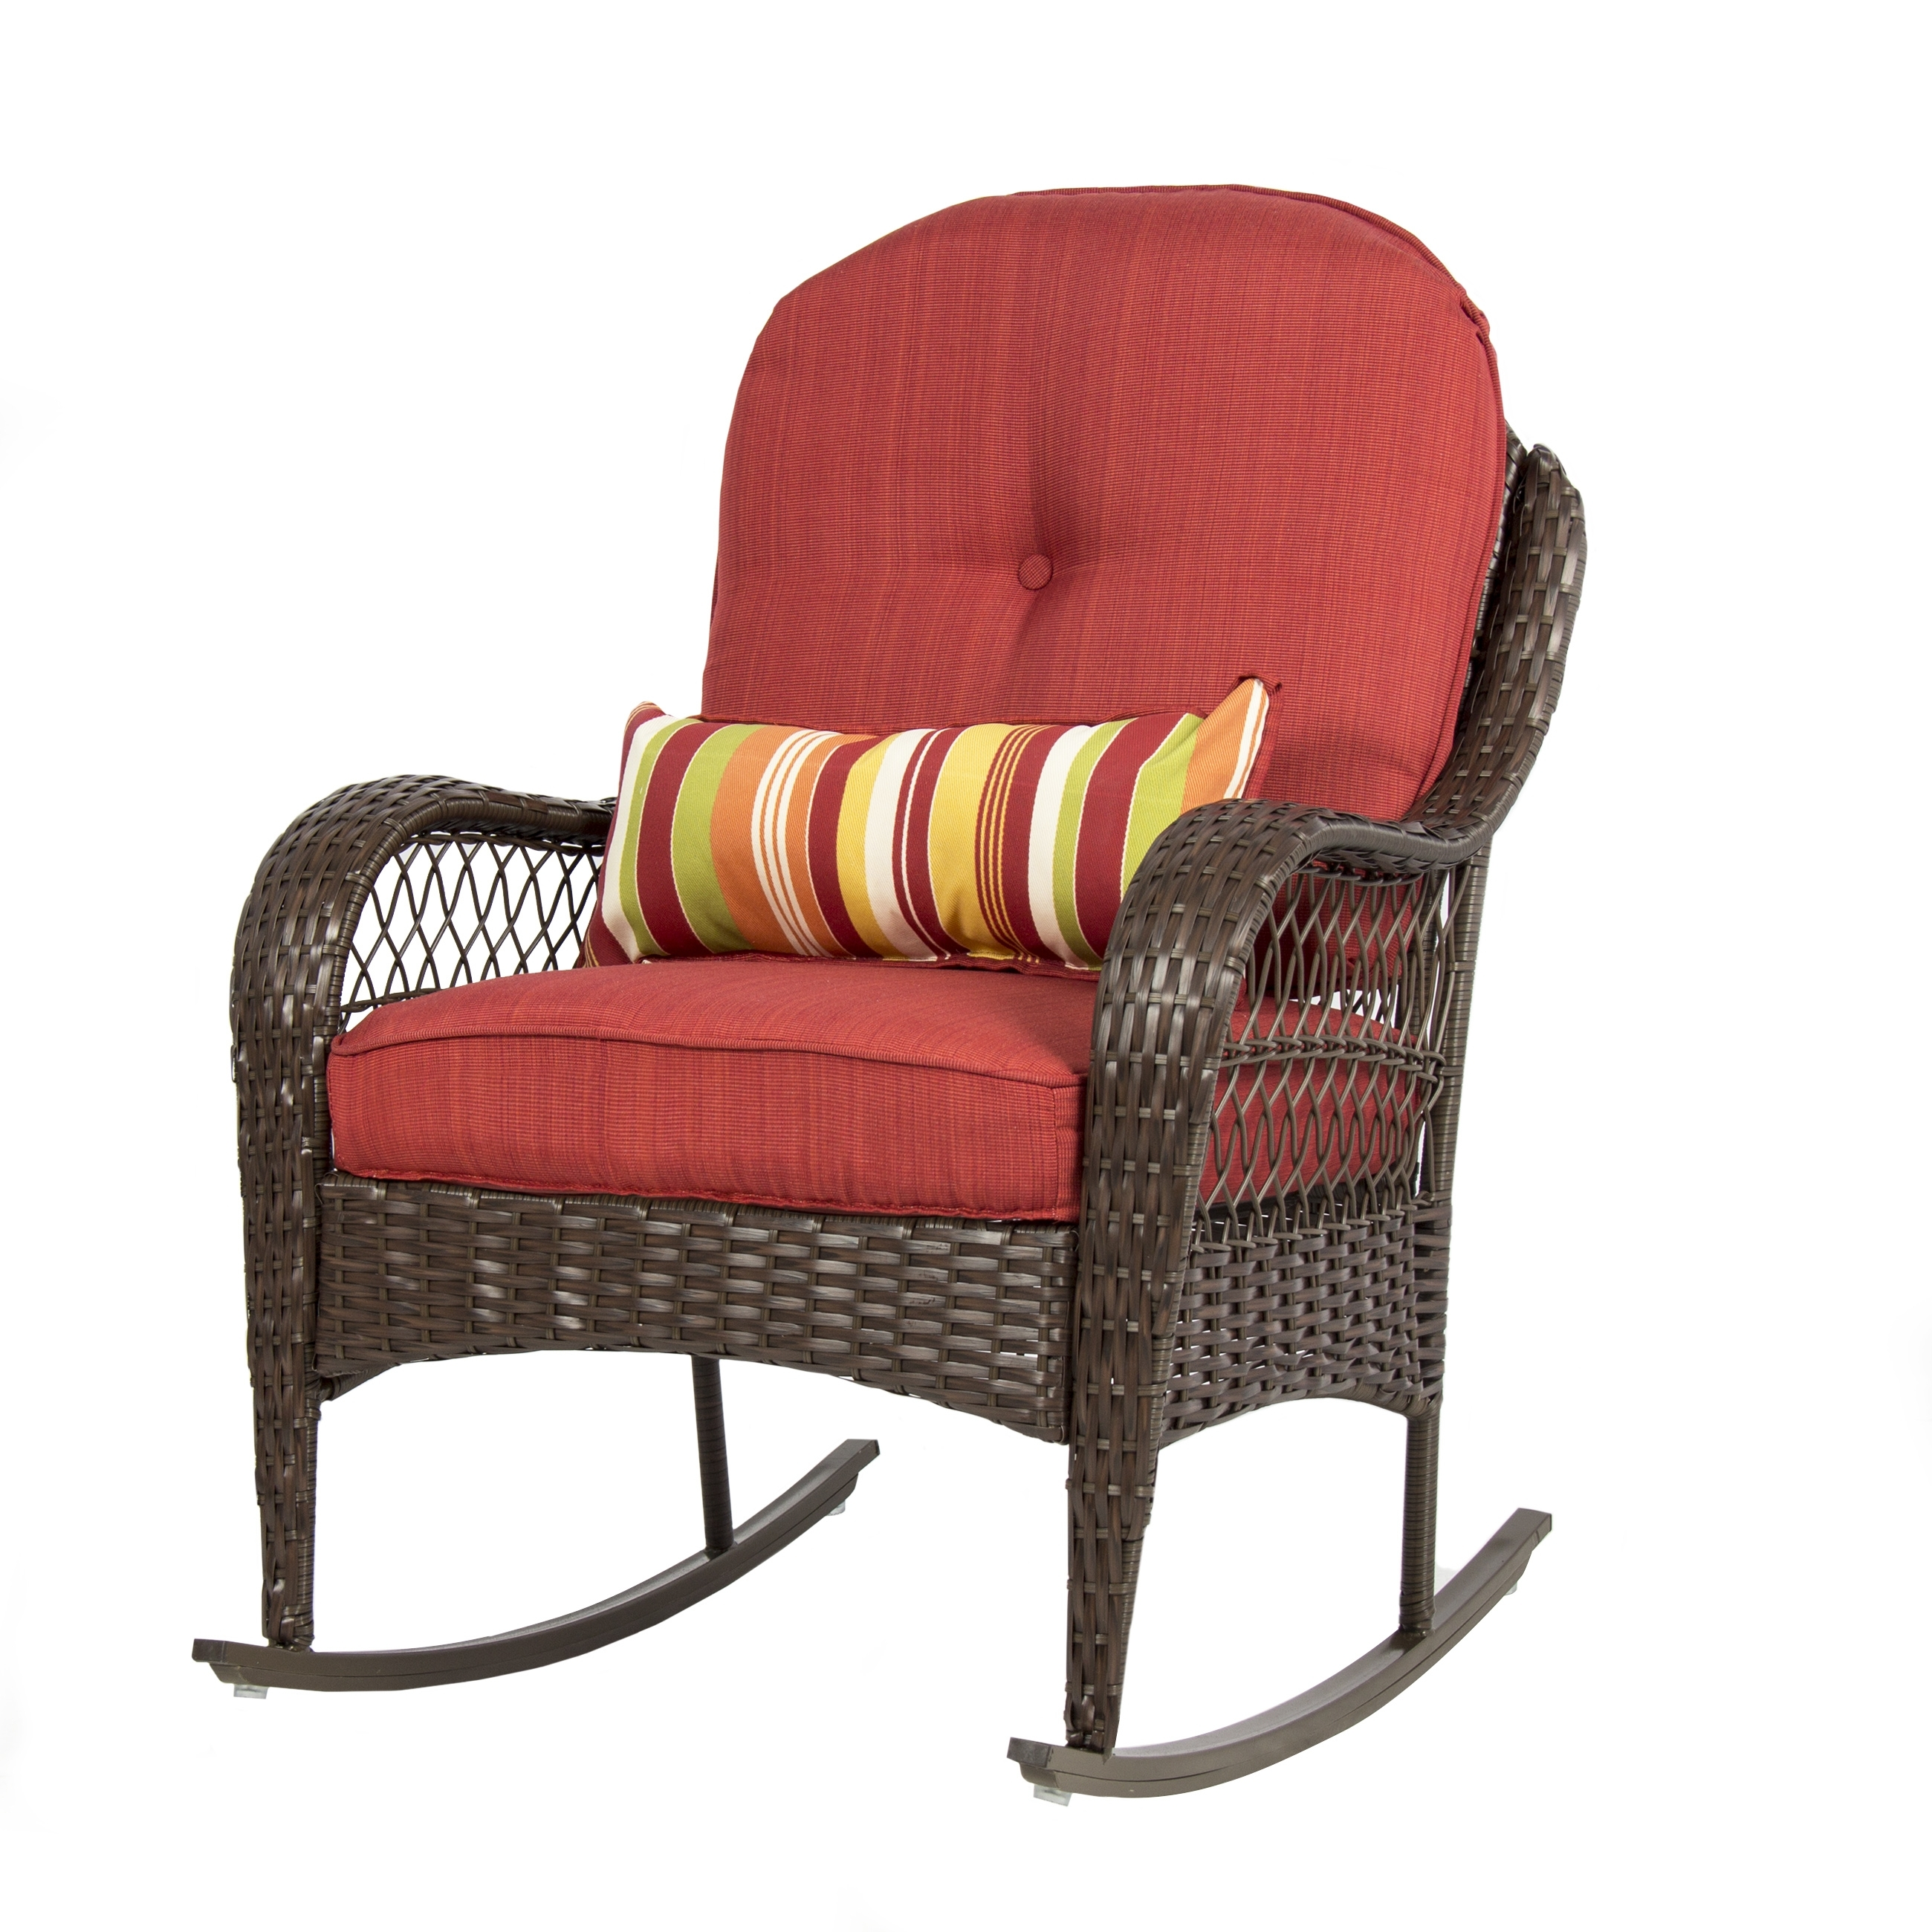 Recent Bestchoiceproducts: Best Choice Products Wicker Rocking Chair Patio Regarding Red Patio Rocking Chairs (View 9 of 20)